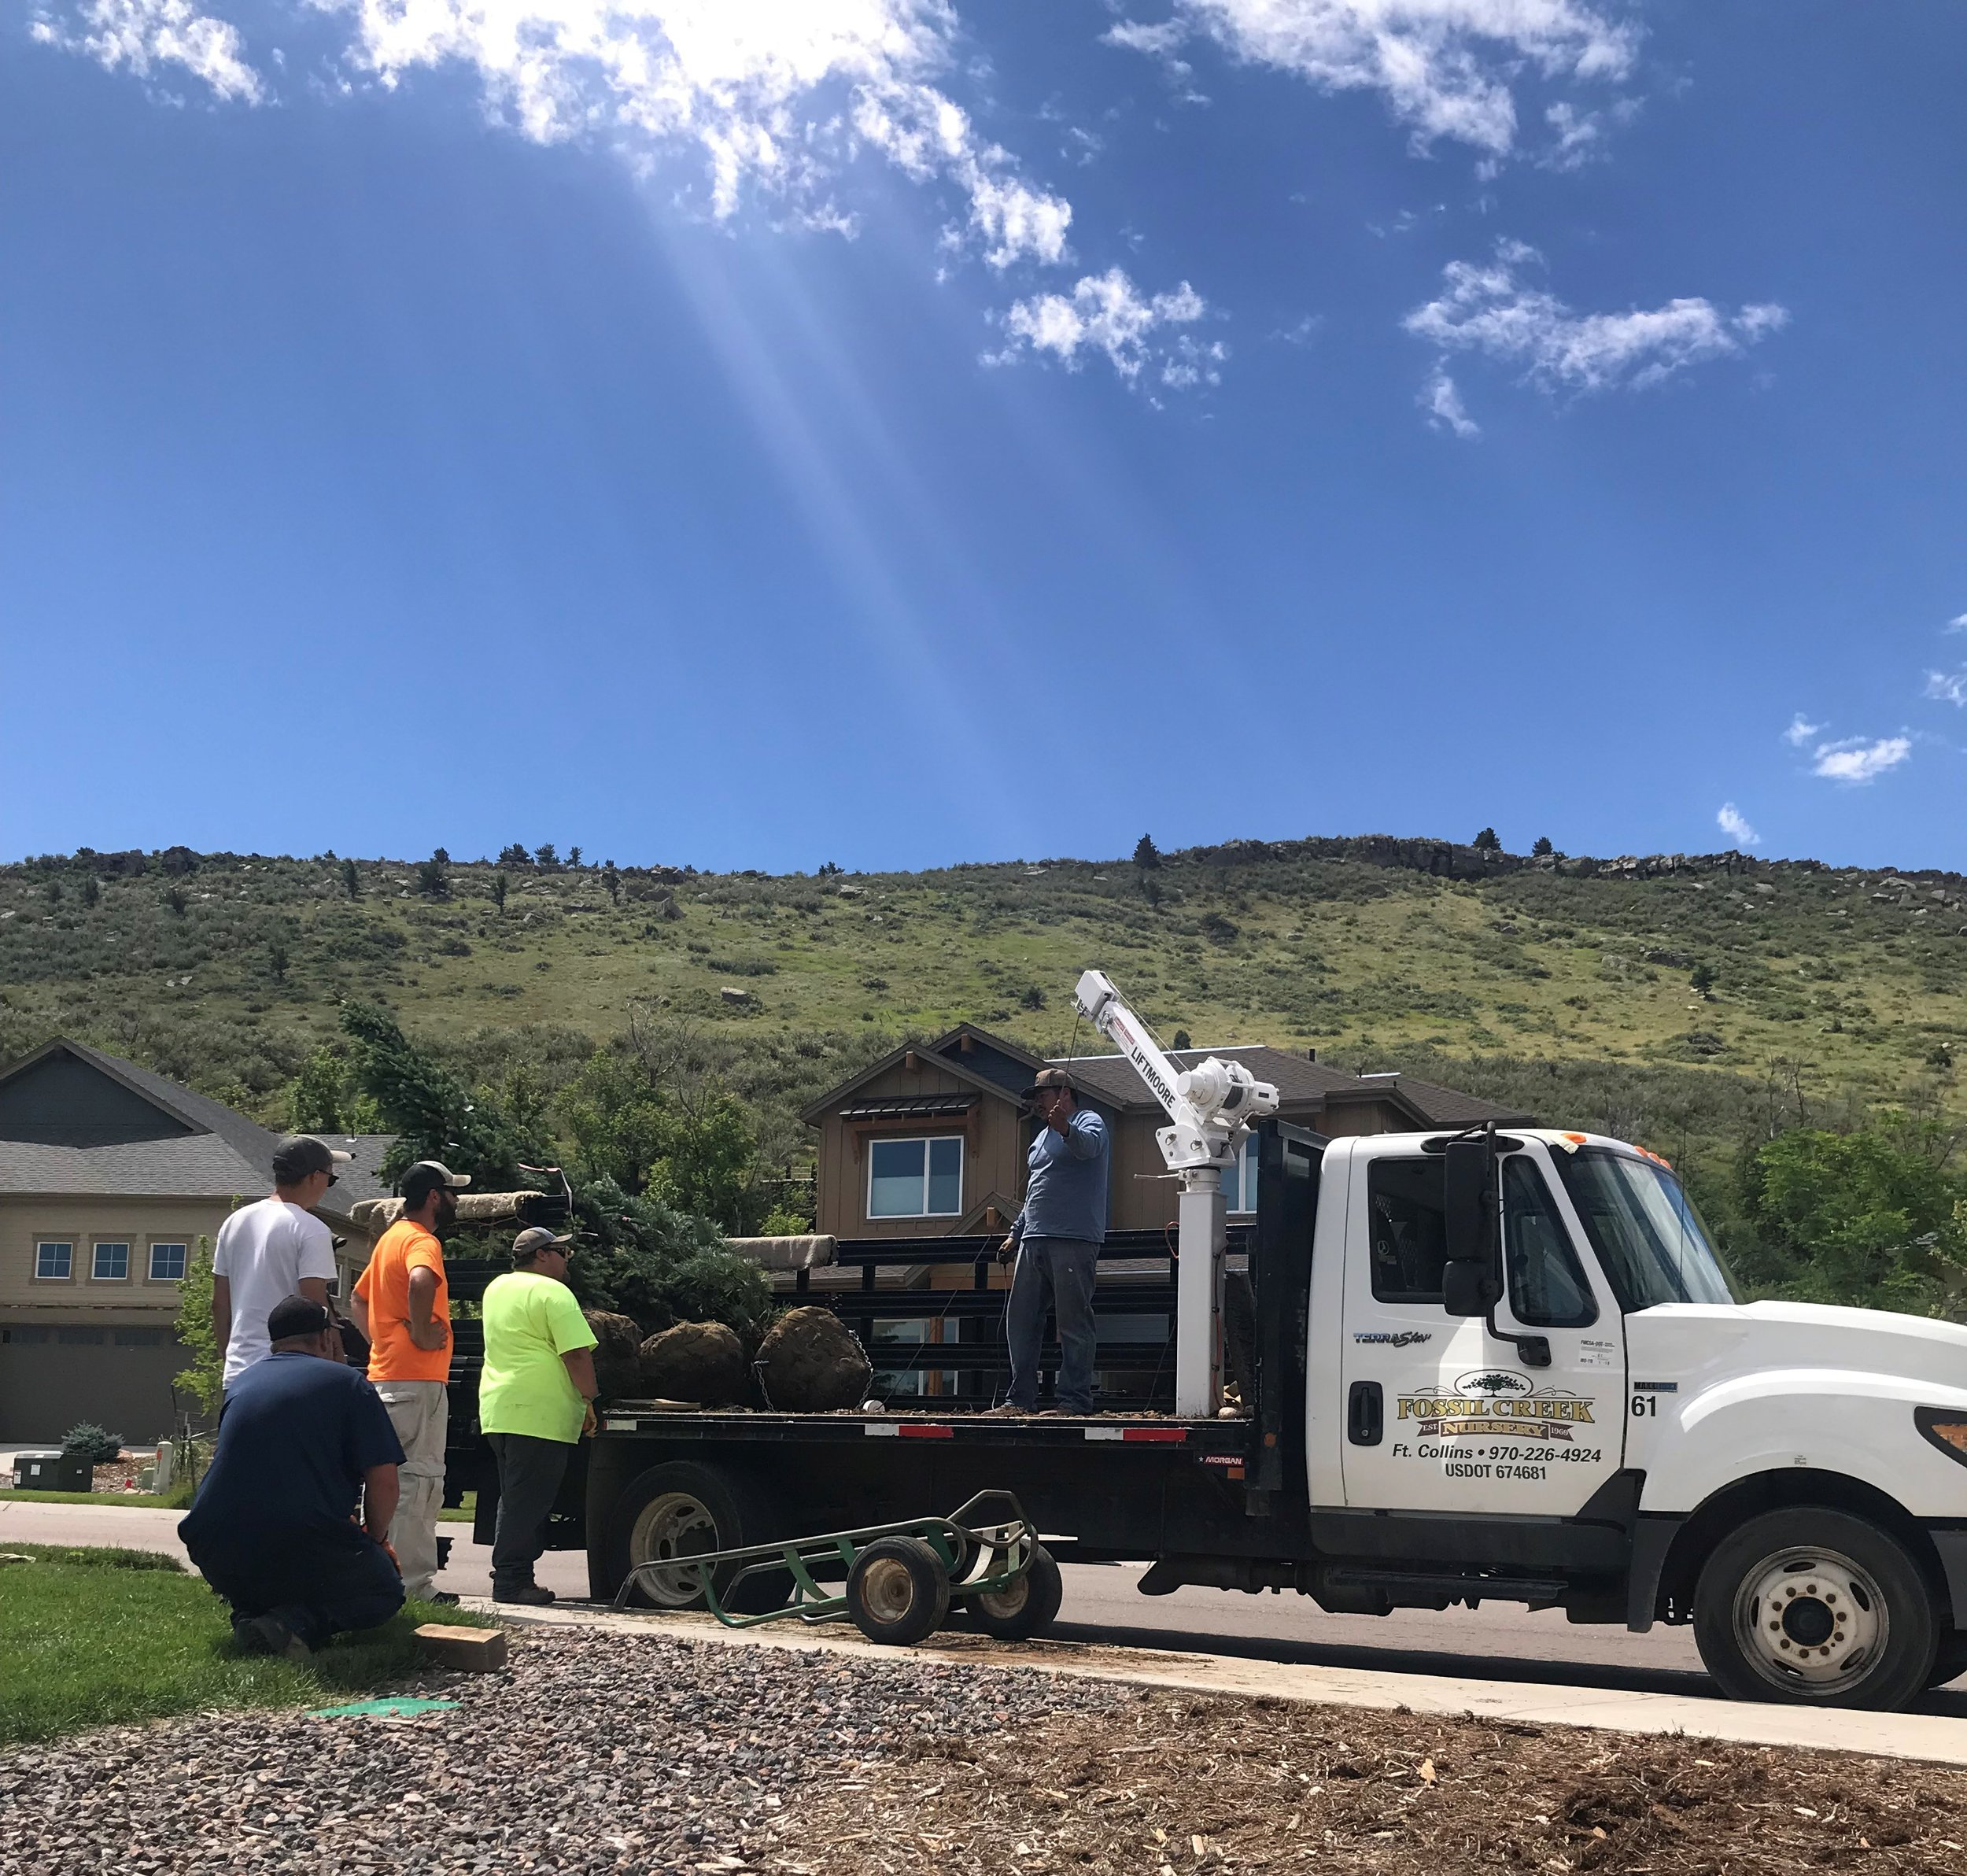 Big shout out to the amazing delivery crew at Fossil Creek Nursery for their assistance with these huge trees - we use Fossil Creek for their fantastic customer service and quality products!